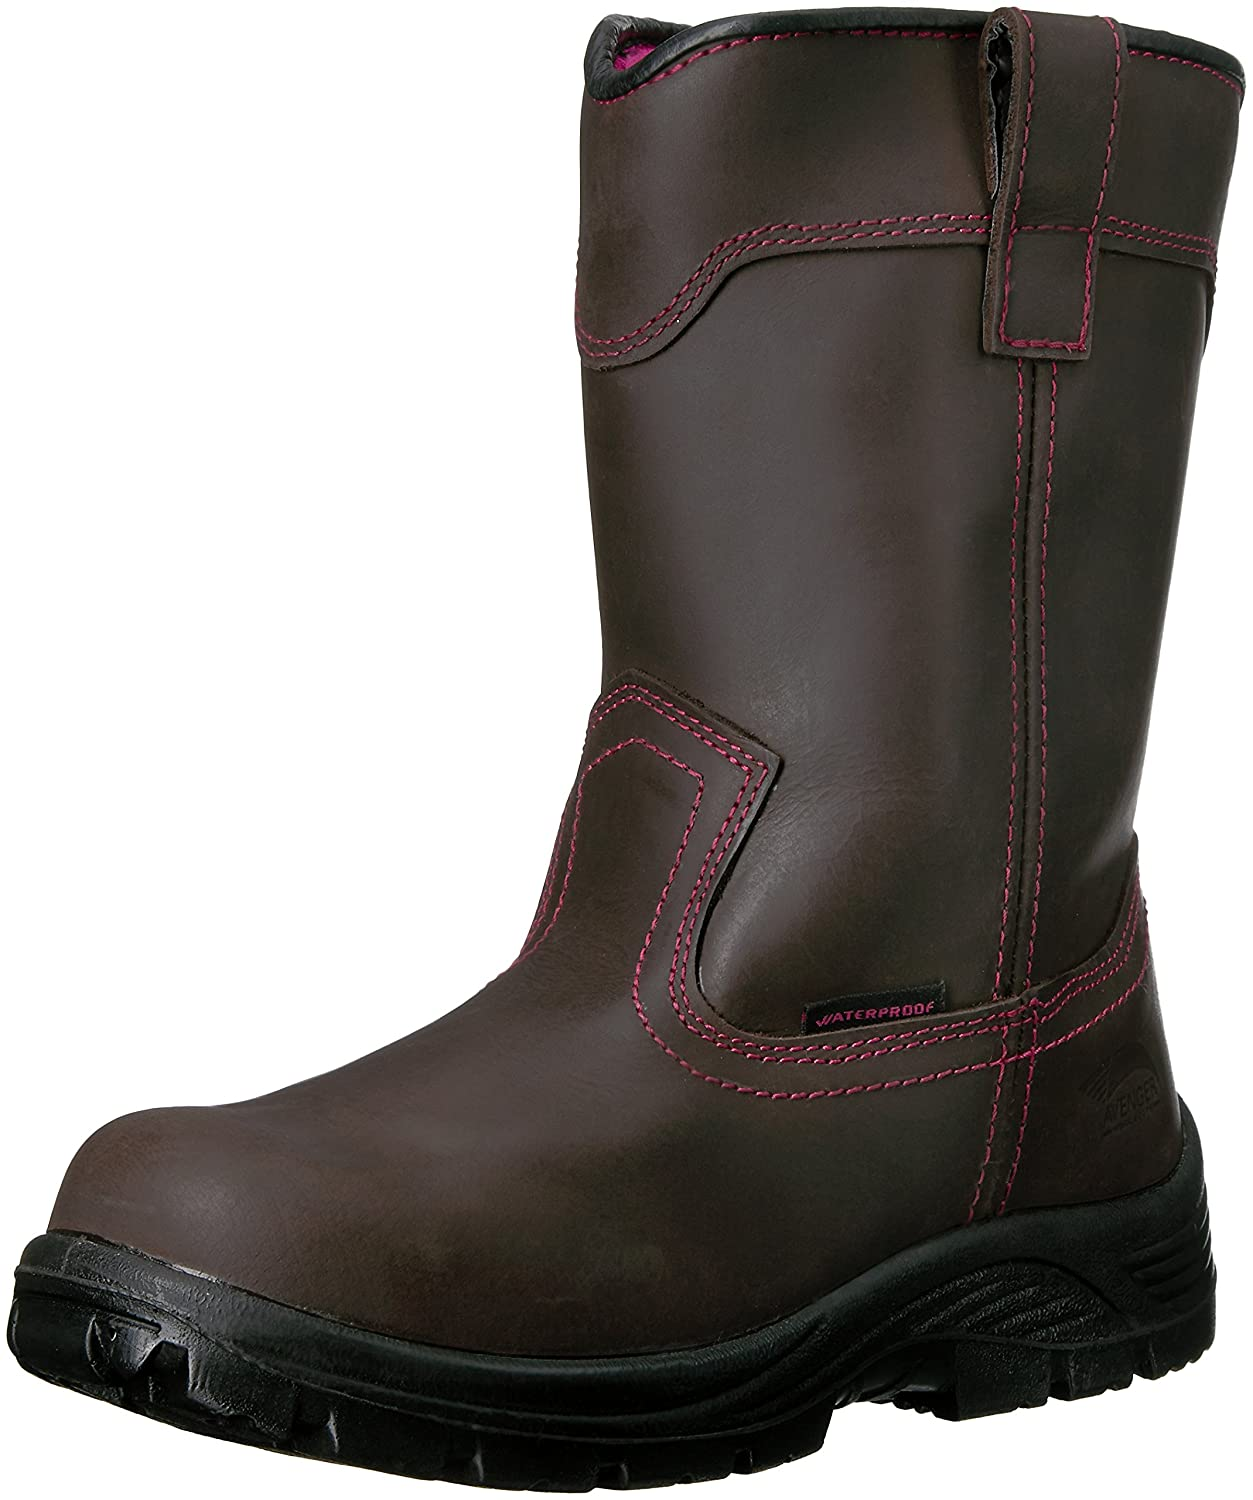 6722894c615 Avenger Safety Footwear Women's 7146 Comp Toe Waterproof Pull on EH Work  Boot Industrial and Construction Shoe